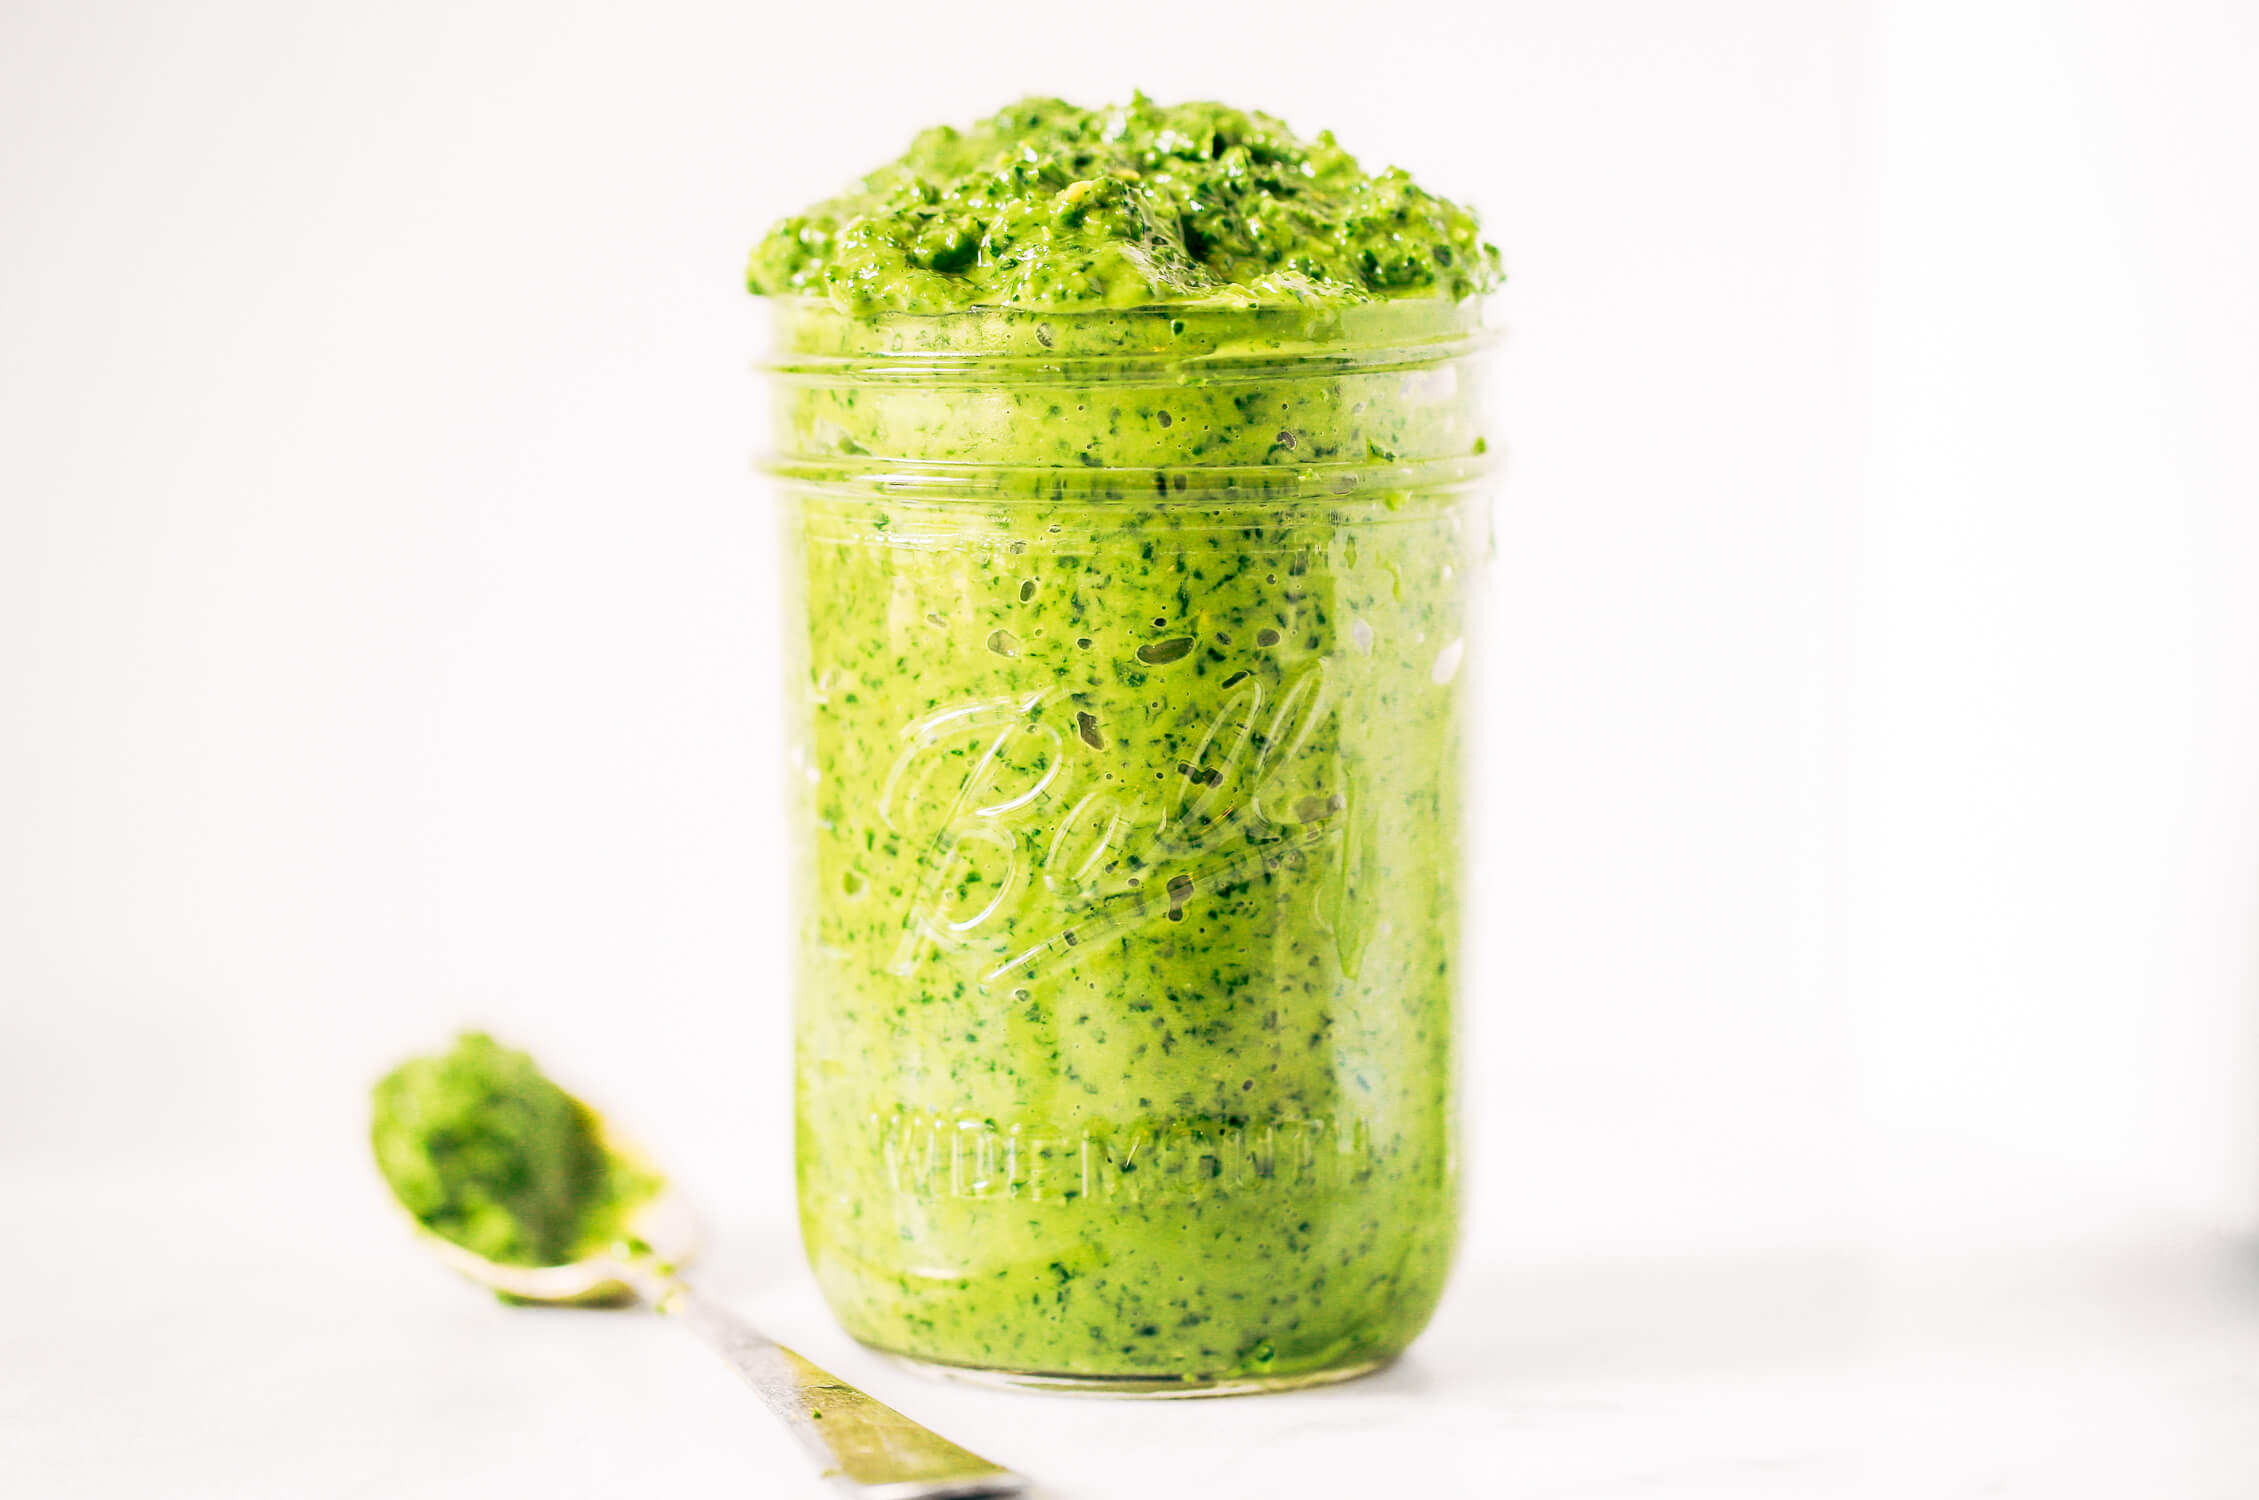 5 minute vegan kale pesto made with avocado, olive oil, and garlic. An easy paleo whole30 sauce to serve with pasta, veggie sticks, or eat with a spoon! A healthy, light, and fresh sauce. Easy whole30 pesto. paleo pesto recipe. Dairy free pesto. Best dairy free pesto recipe. Best whole30 pesto recipe.